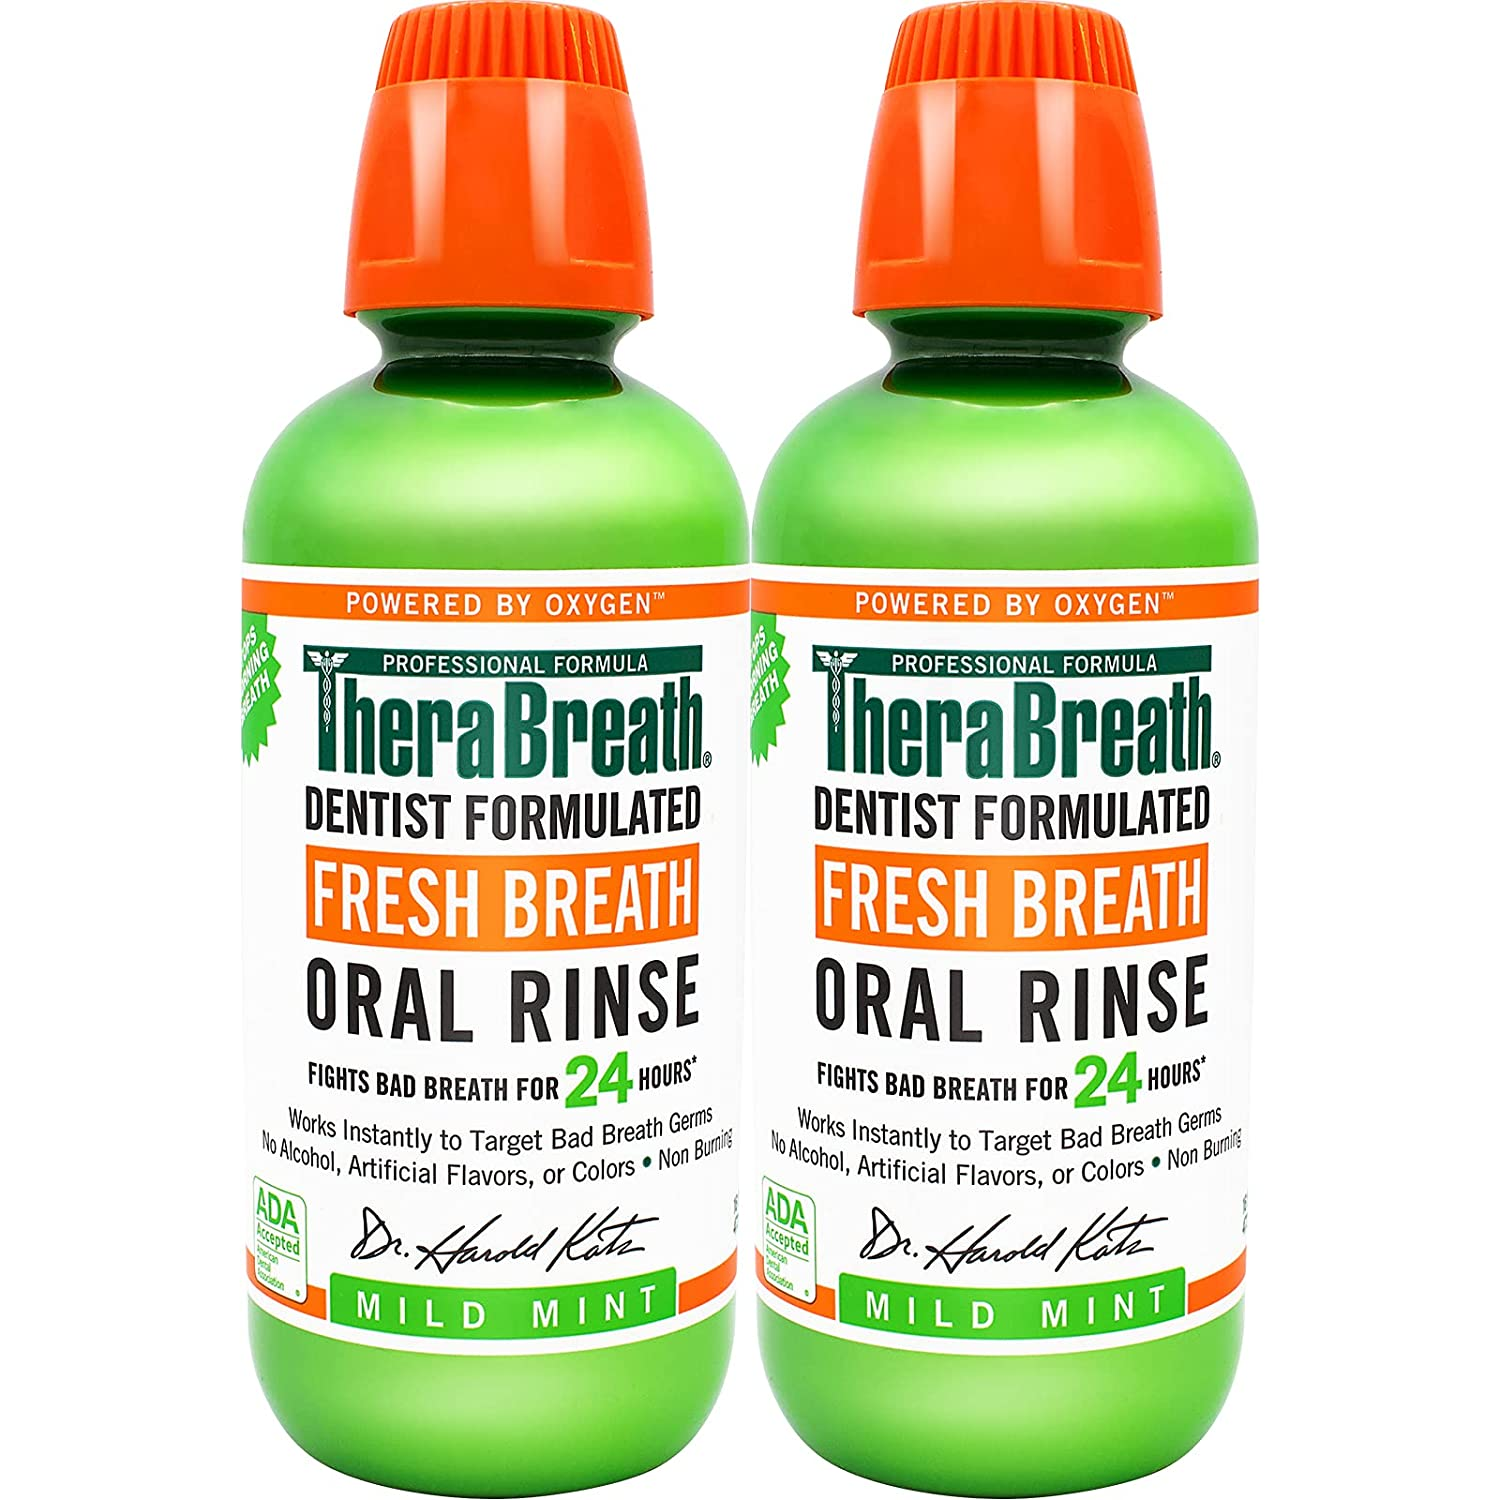 Cheap mail order specialty store Outstanding TheraBreath Fresh Breath Dentist Formulated 24-Hour Oral Rinse